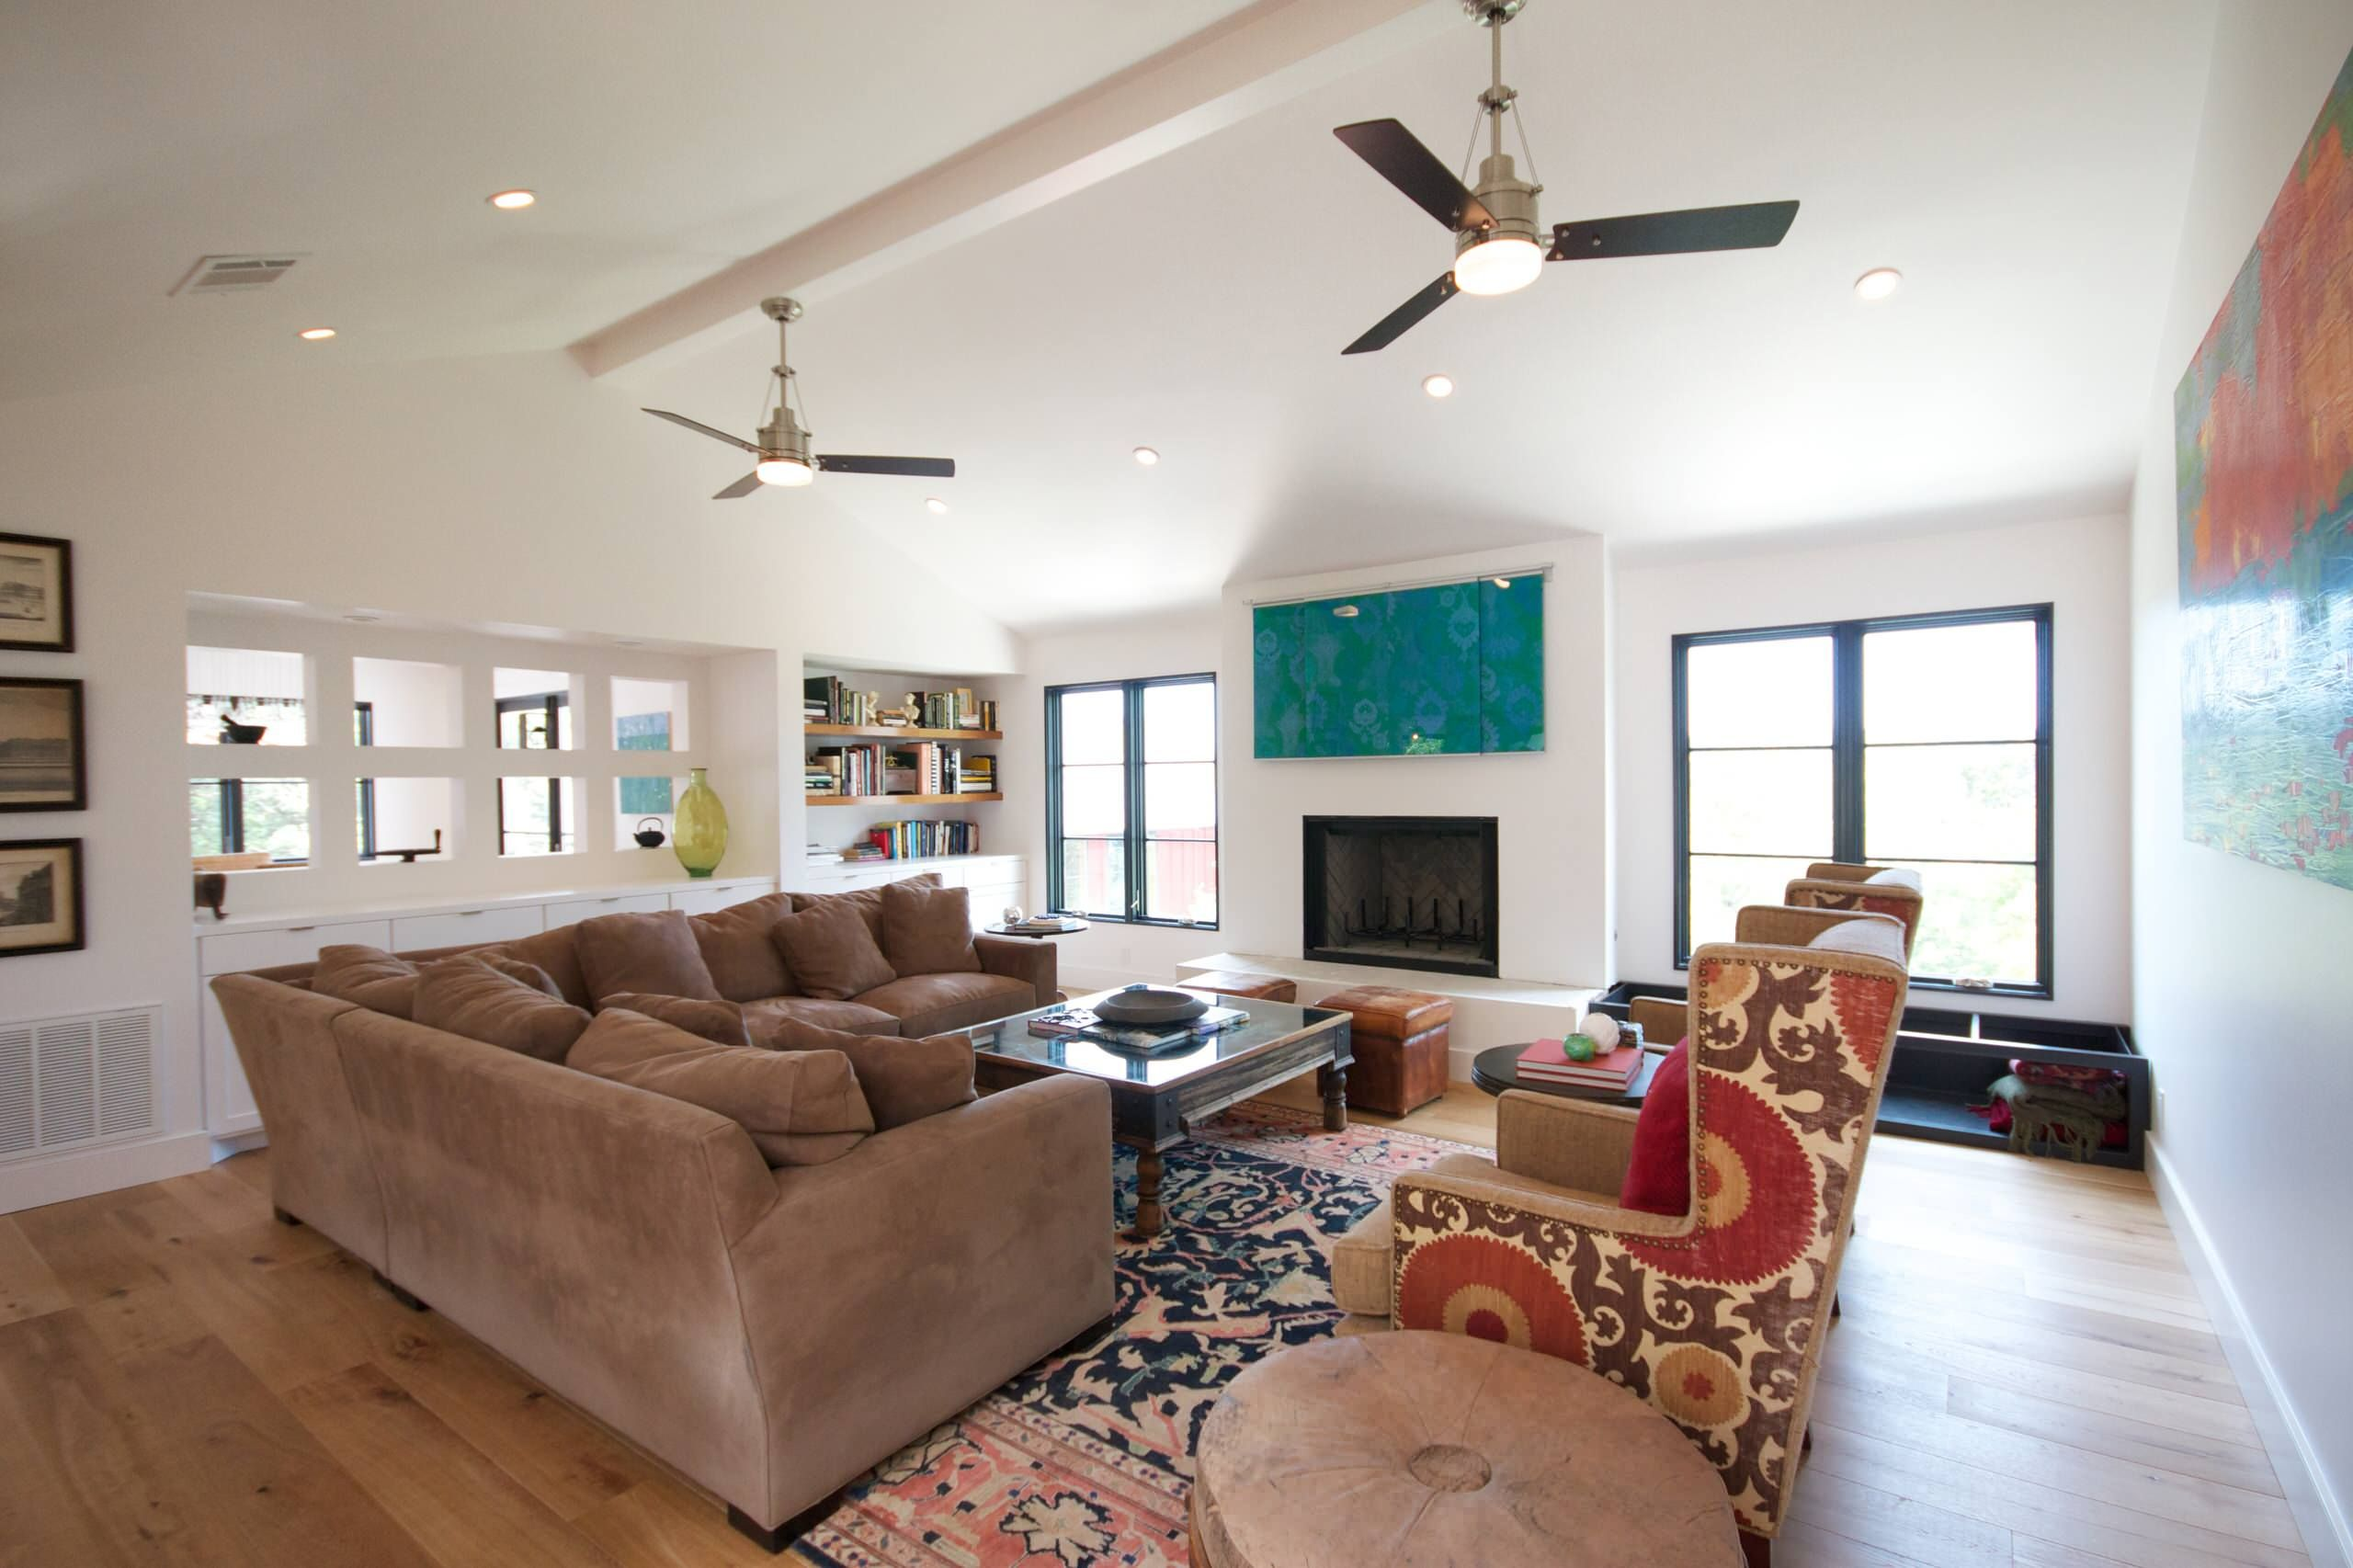 Image Result For High Ceiling Living Room With Two Fans Living